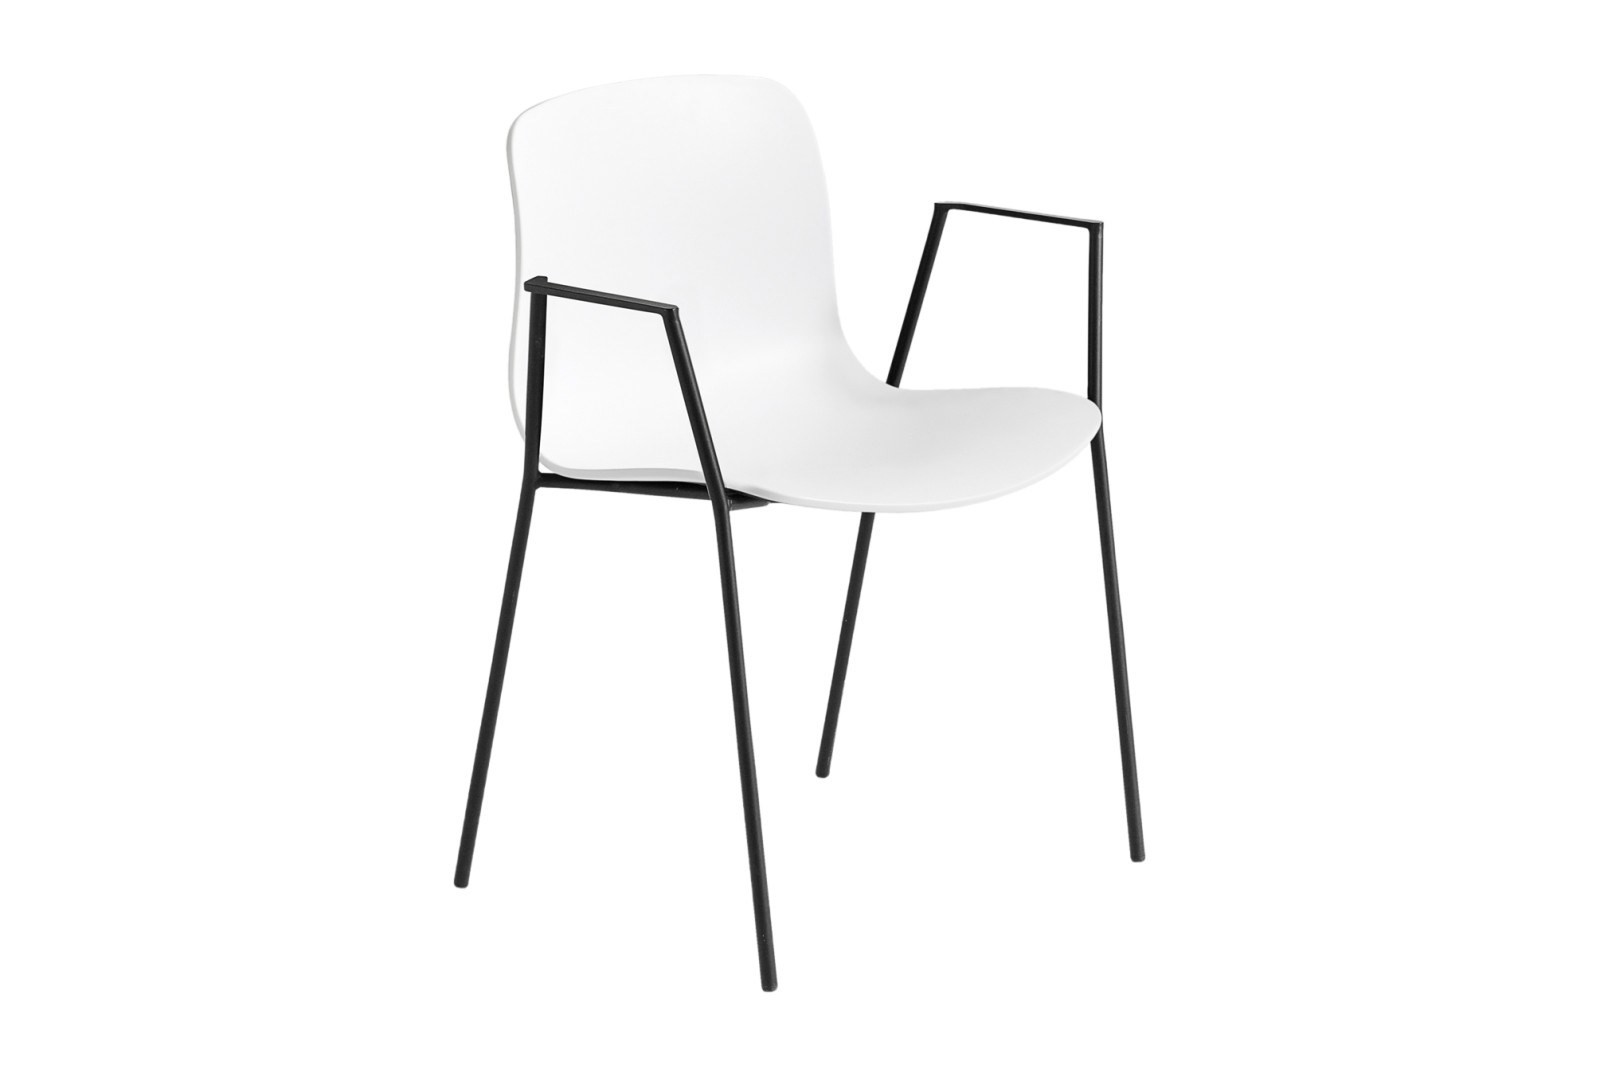 About A Chair AAC18 White, Black Powder Coated Steel